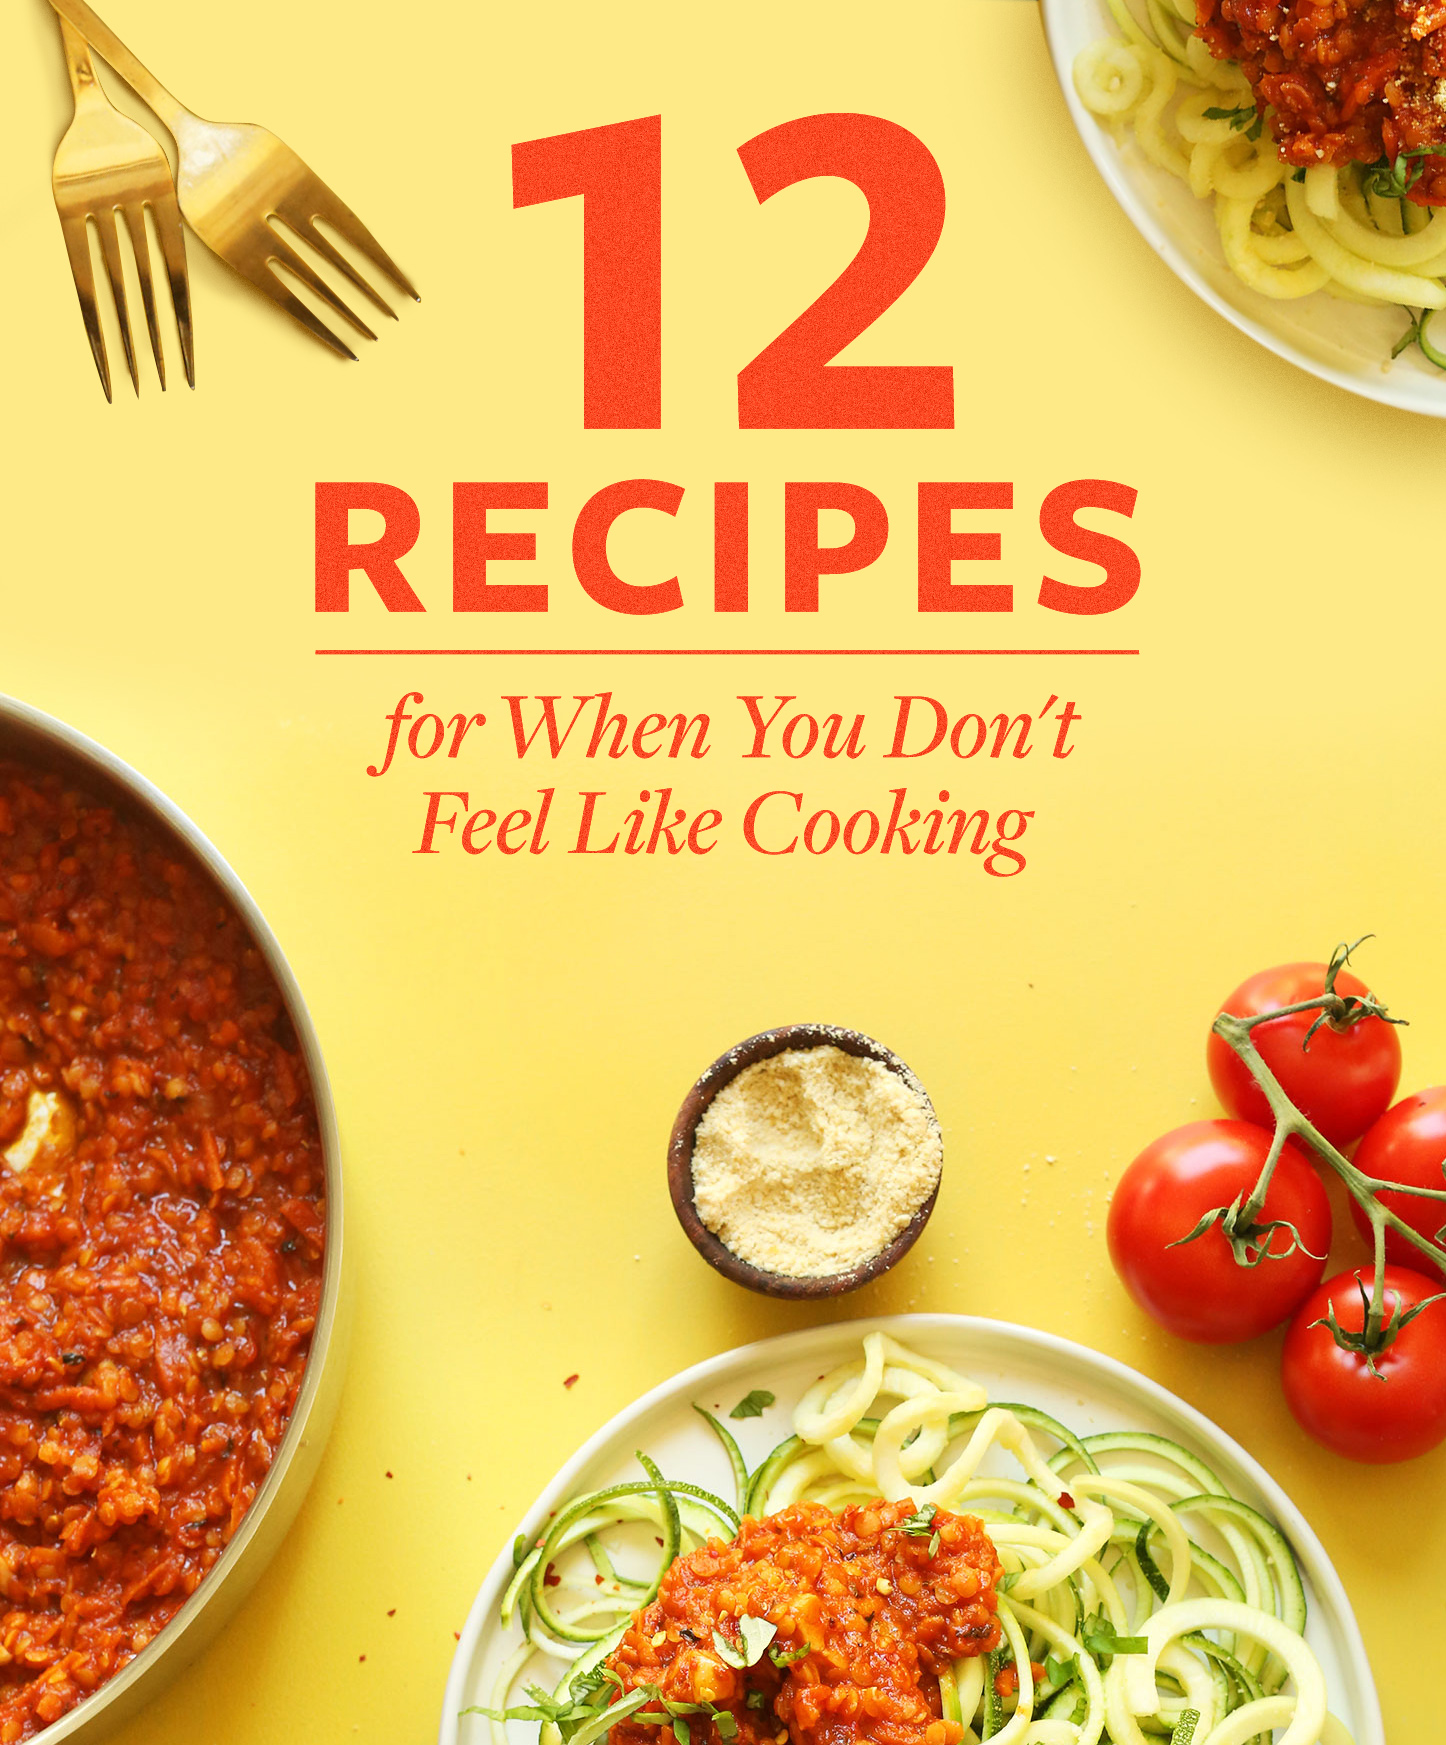 Vegan recipe ideas for when you don't feel like cooking